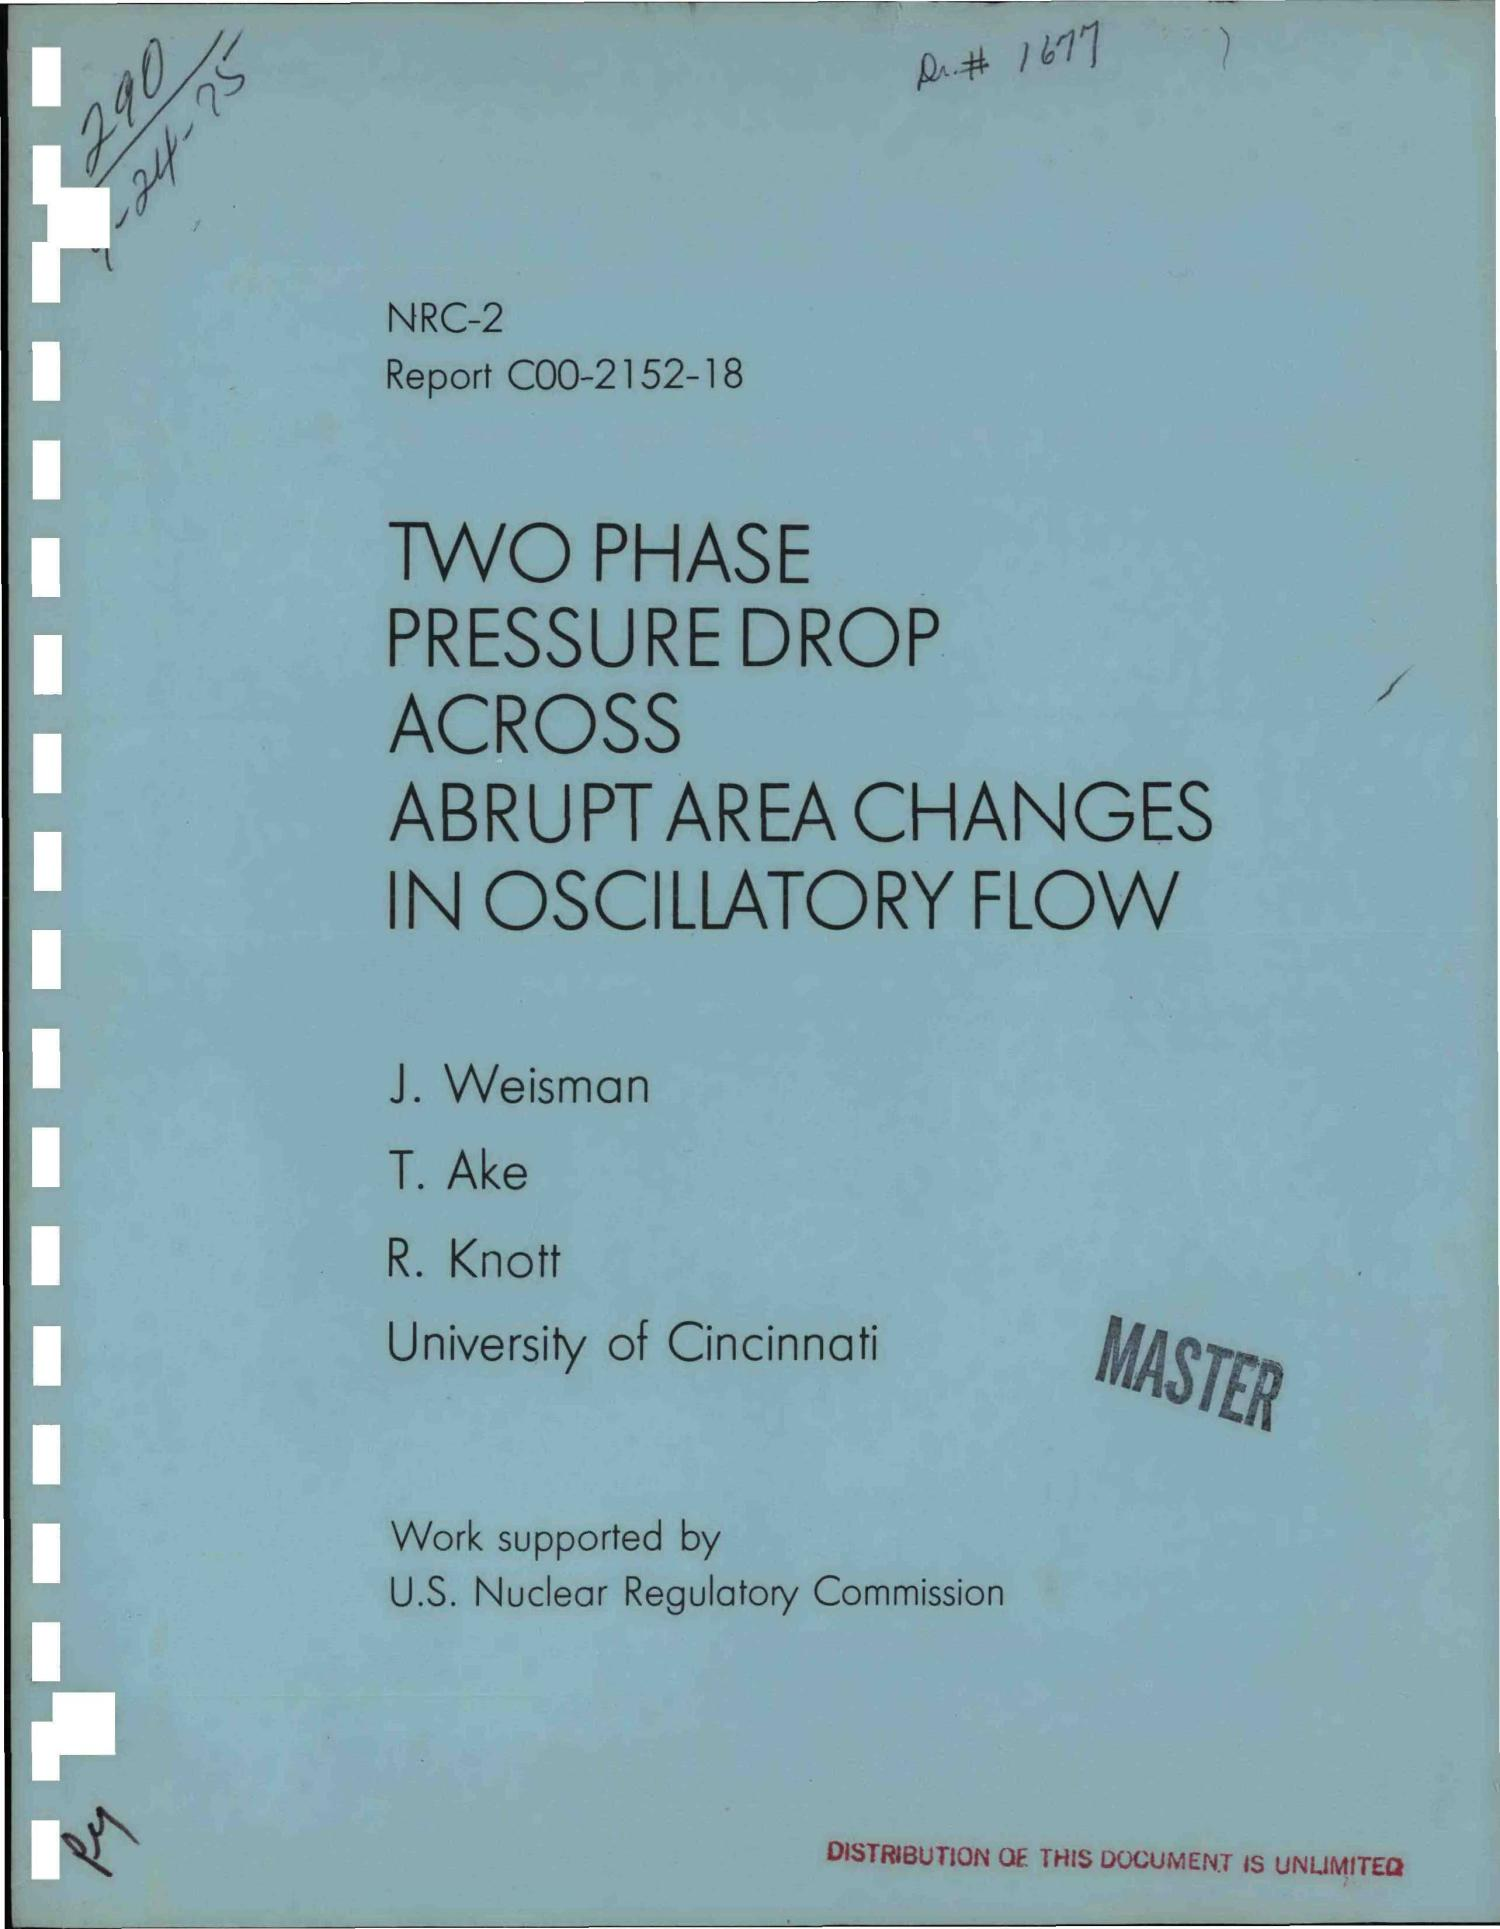 Two phase pressure drop across abrupt area changes in oscillatory flow                                                                                                      [Sequence #]: 1 of 76